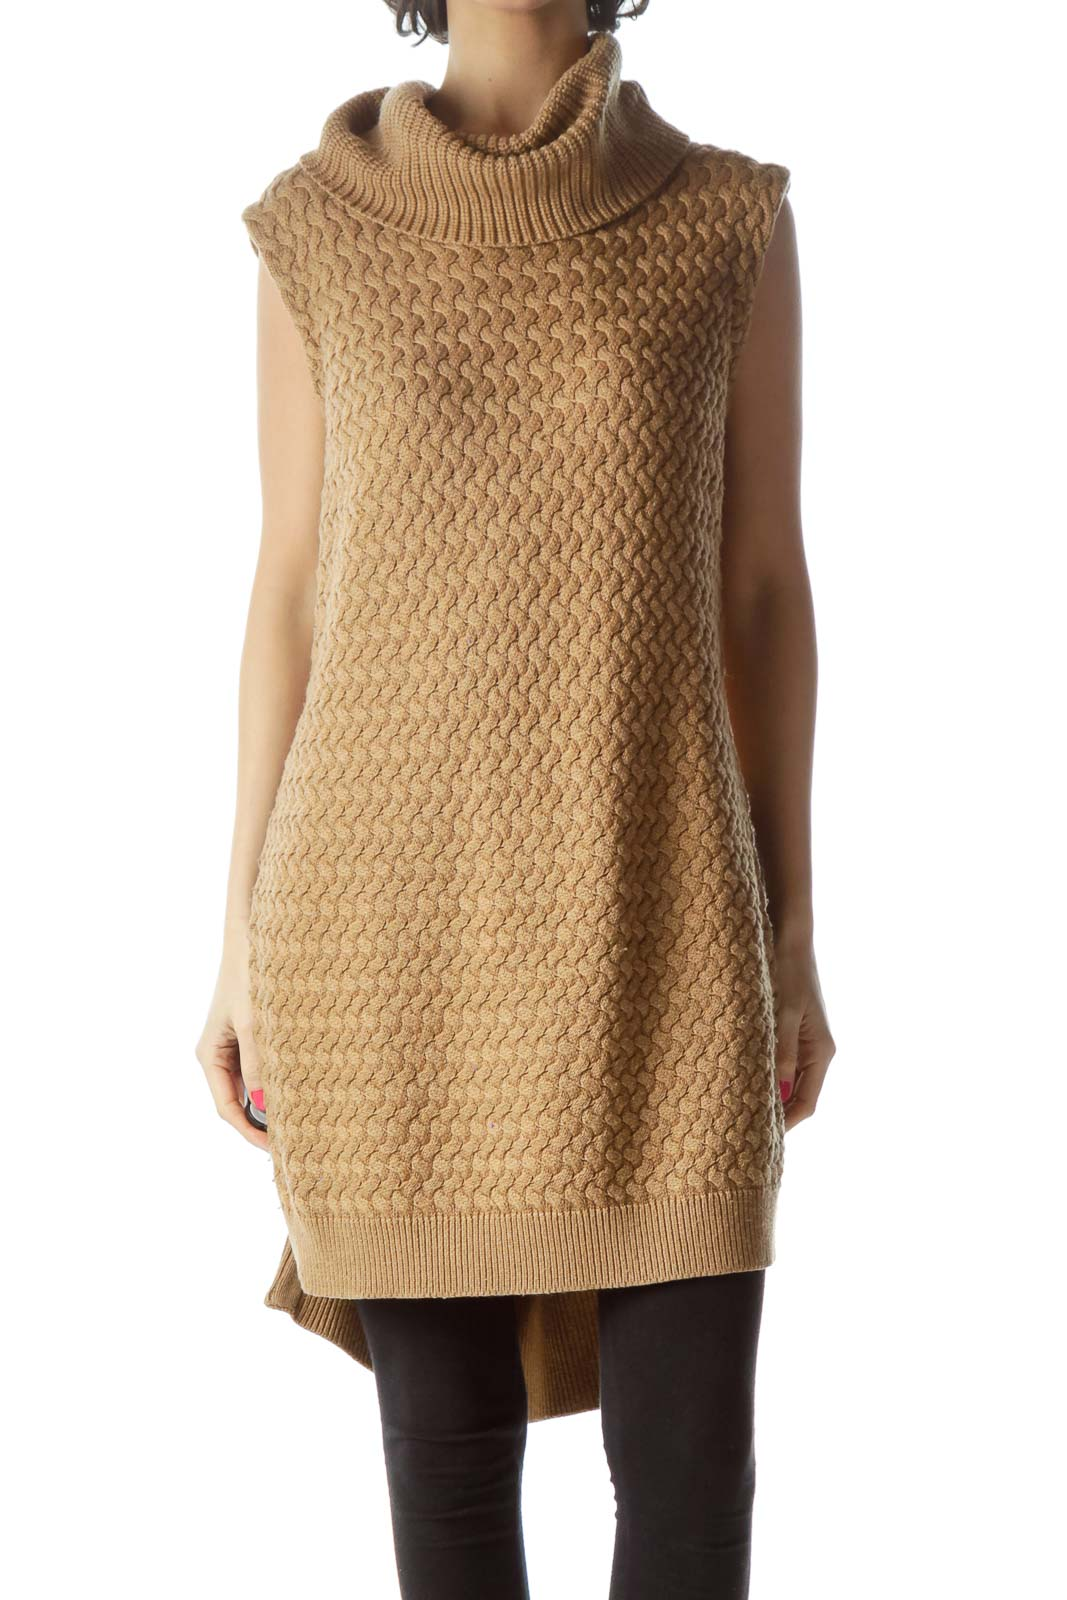 Brown Sleeveless Turtleneck Knit with Zipper Detail Front